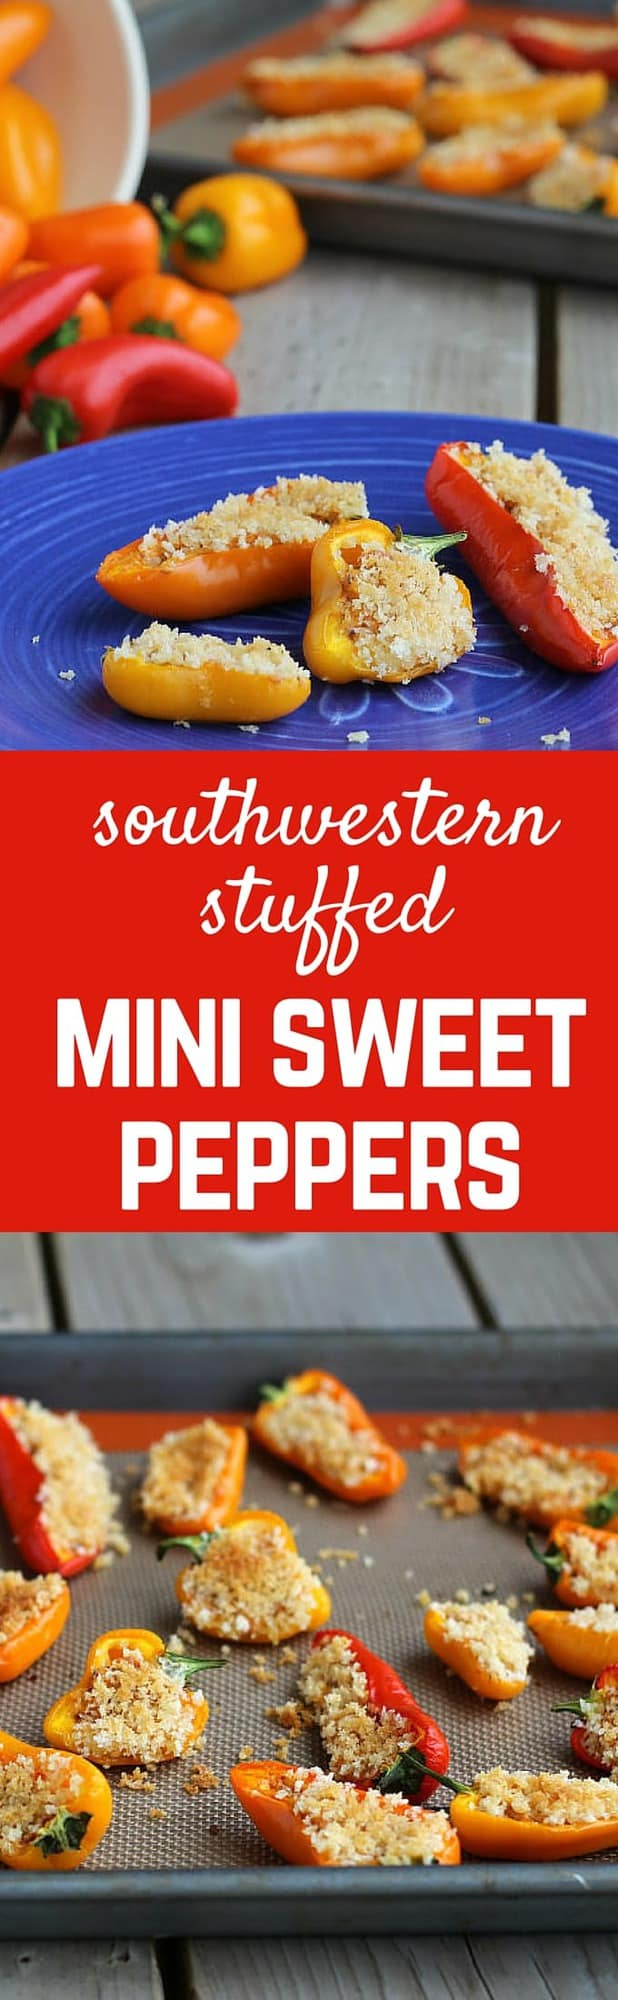 These stuffed mini sweet peppers have a perfect touch of the southwest. Spicy, creamy, crunchy and so tasty! What more could you want? Get the recipe on RachelCooks.com!